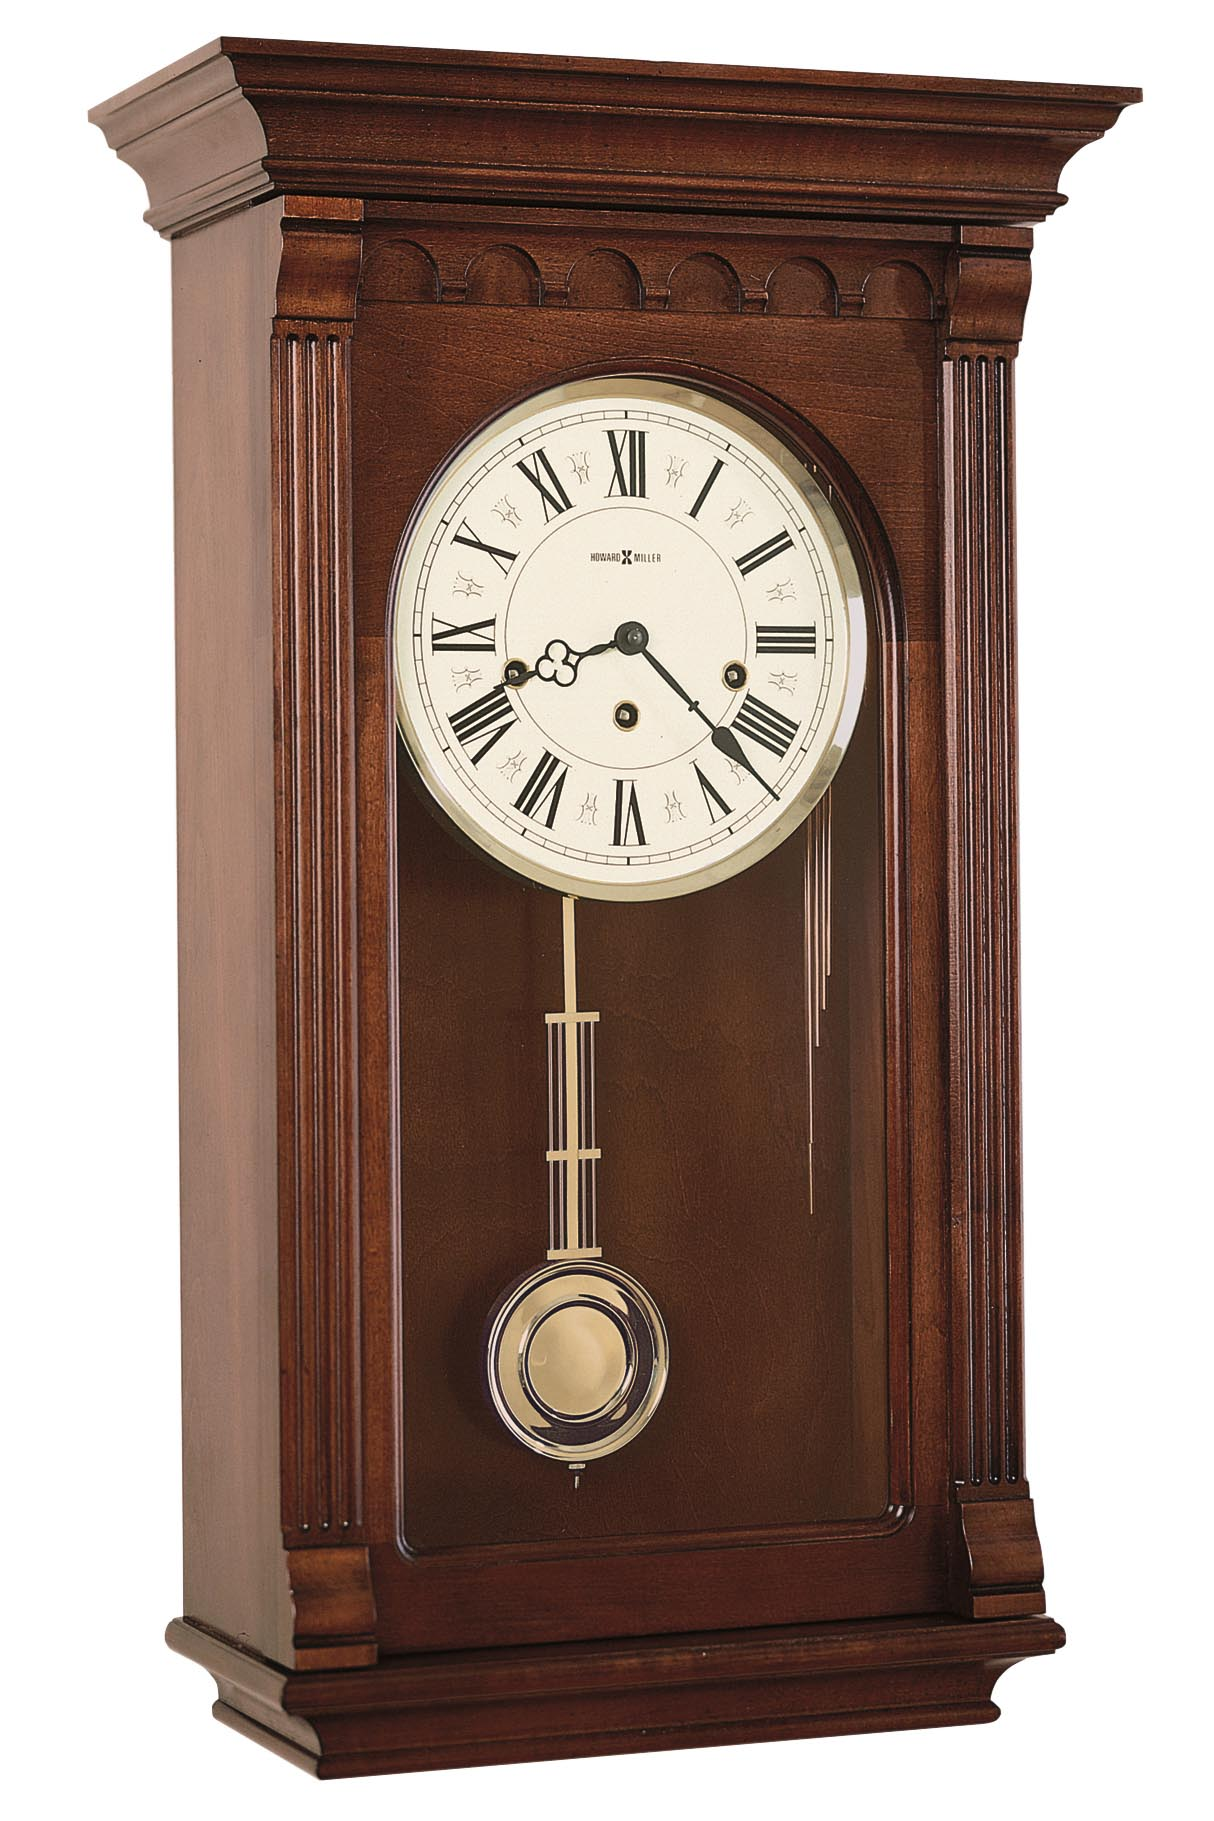 Howard miller wall clock grandfathers clock gallery clinic howard miller wall clock amipublicfo Images